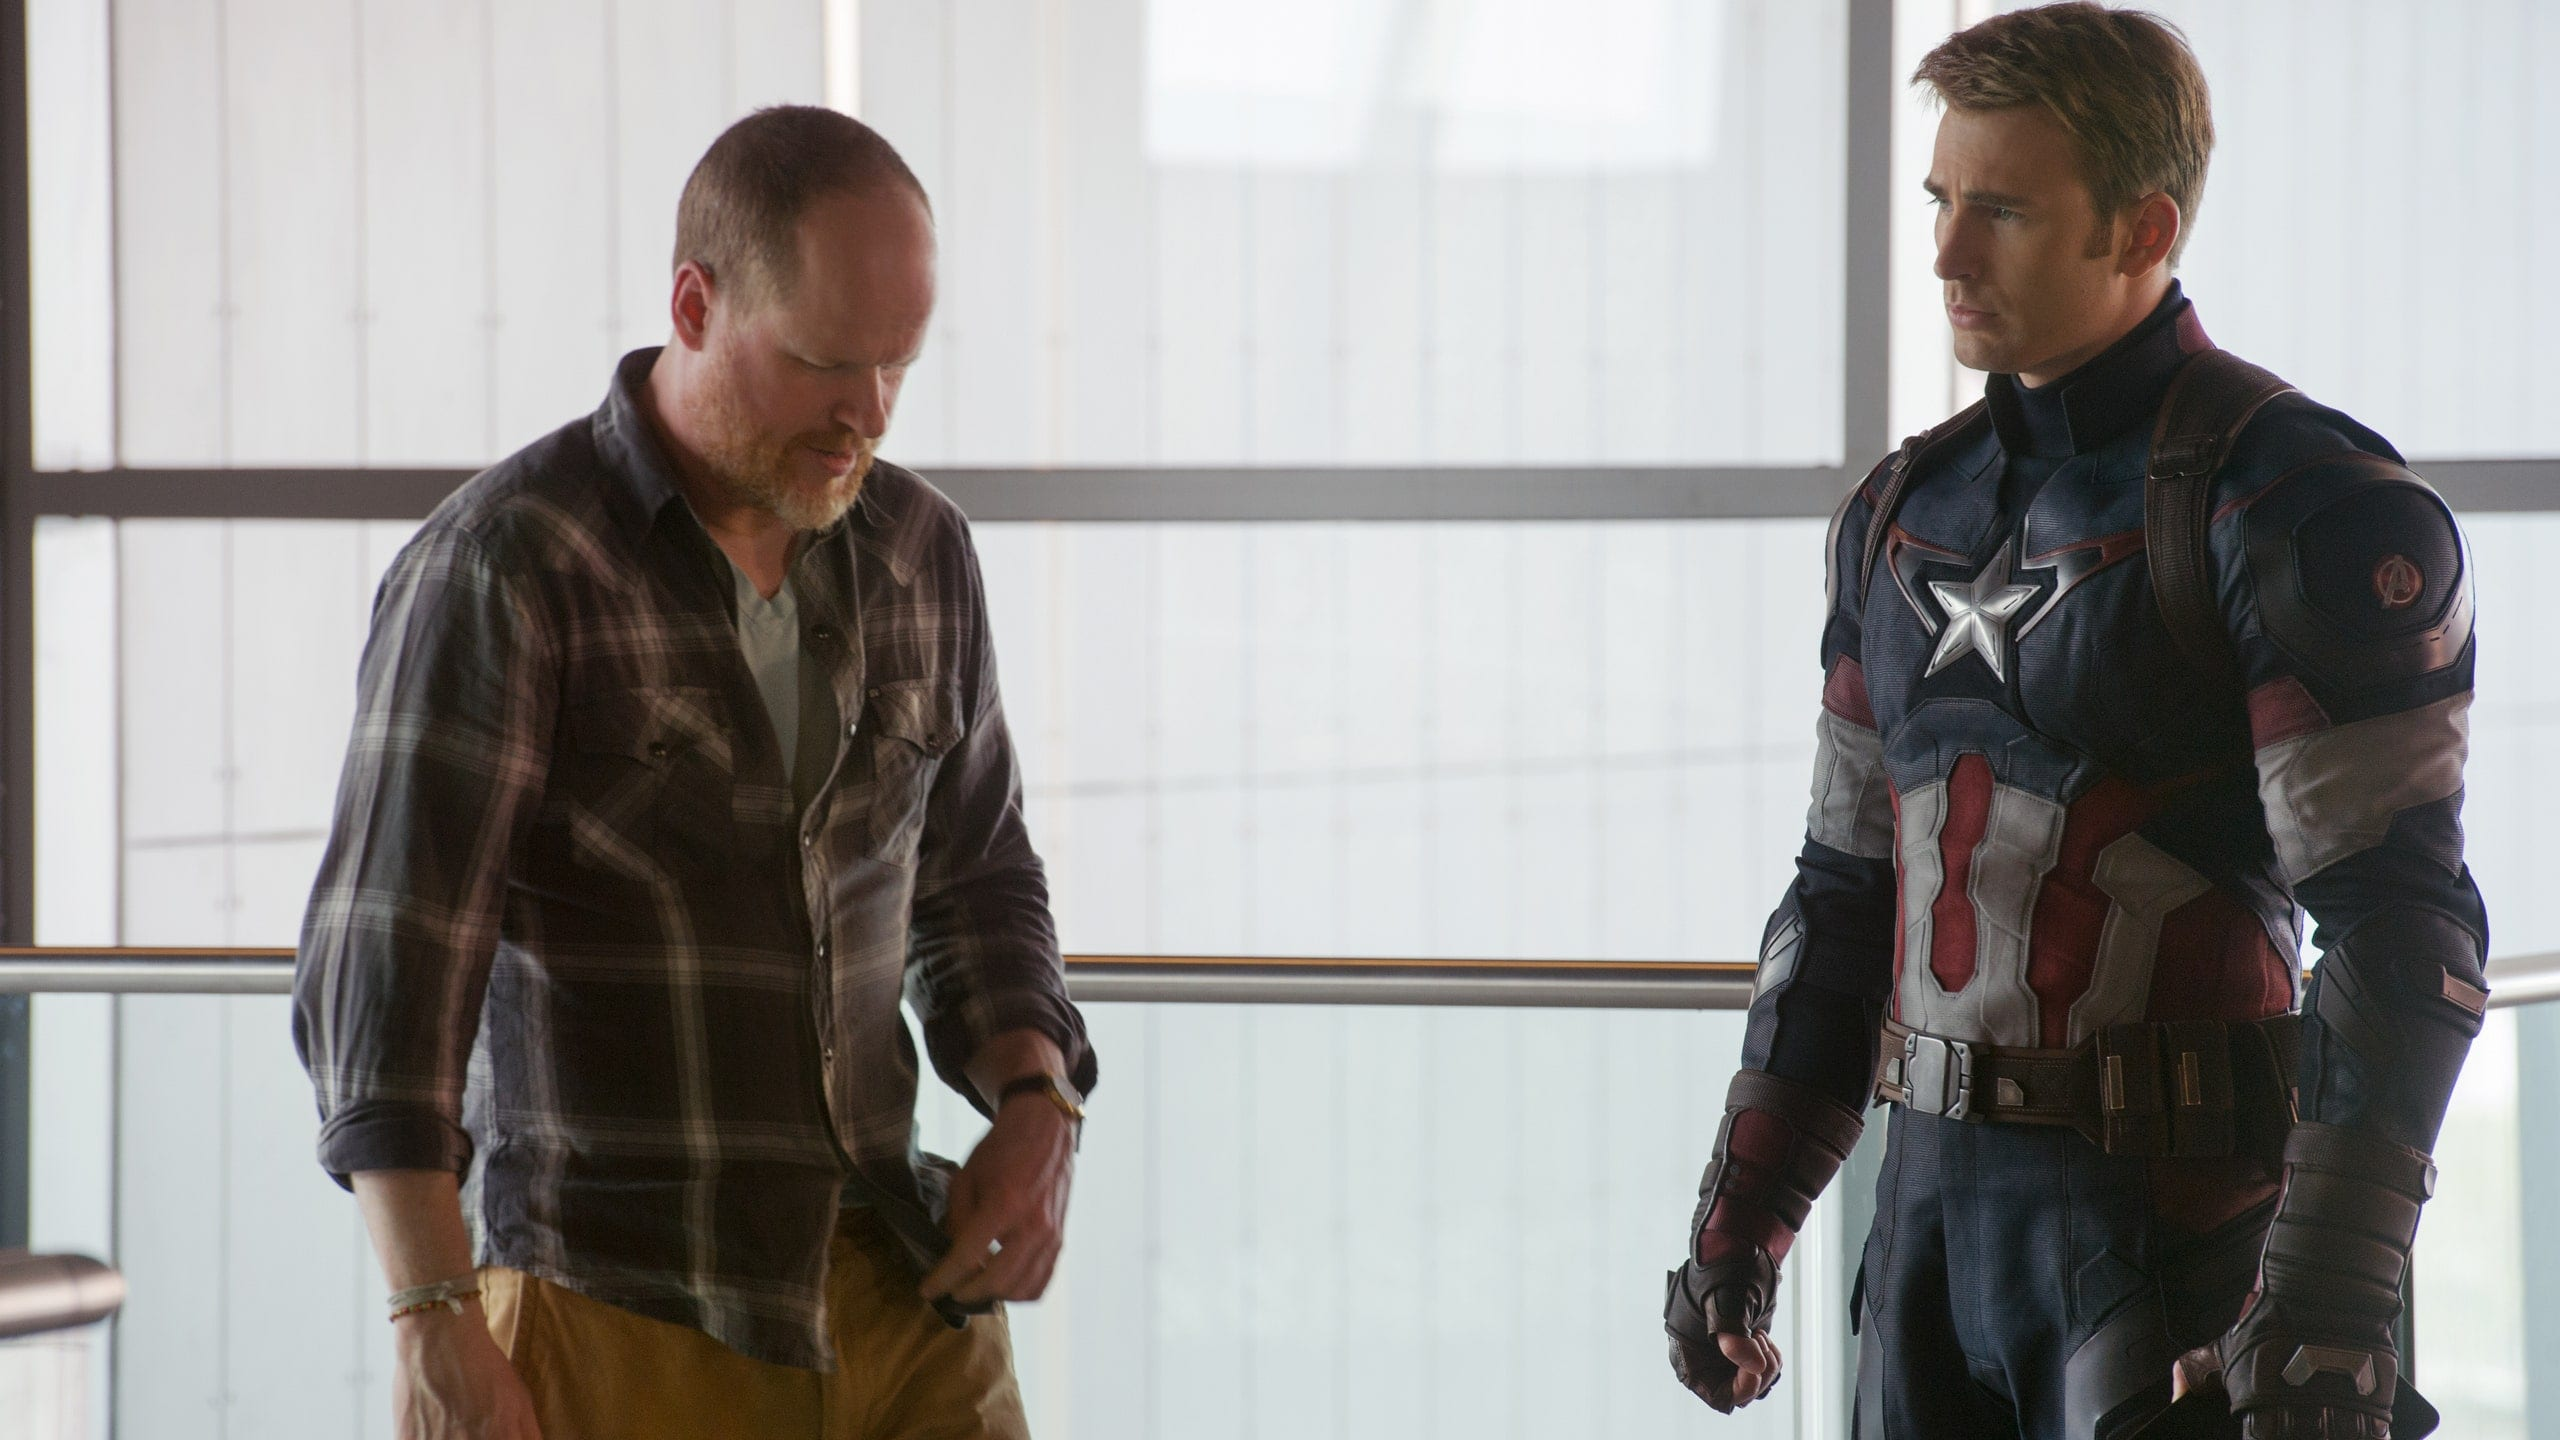 Is Kevin Feige's Development of the MCU a Myth?